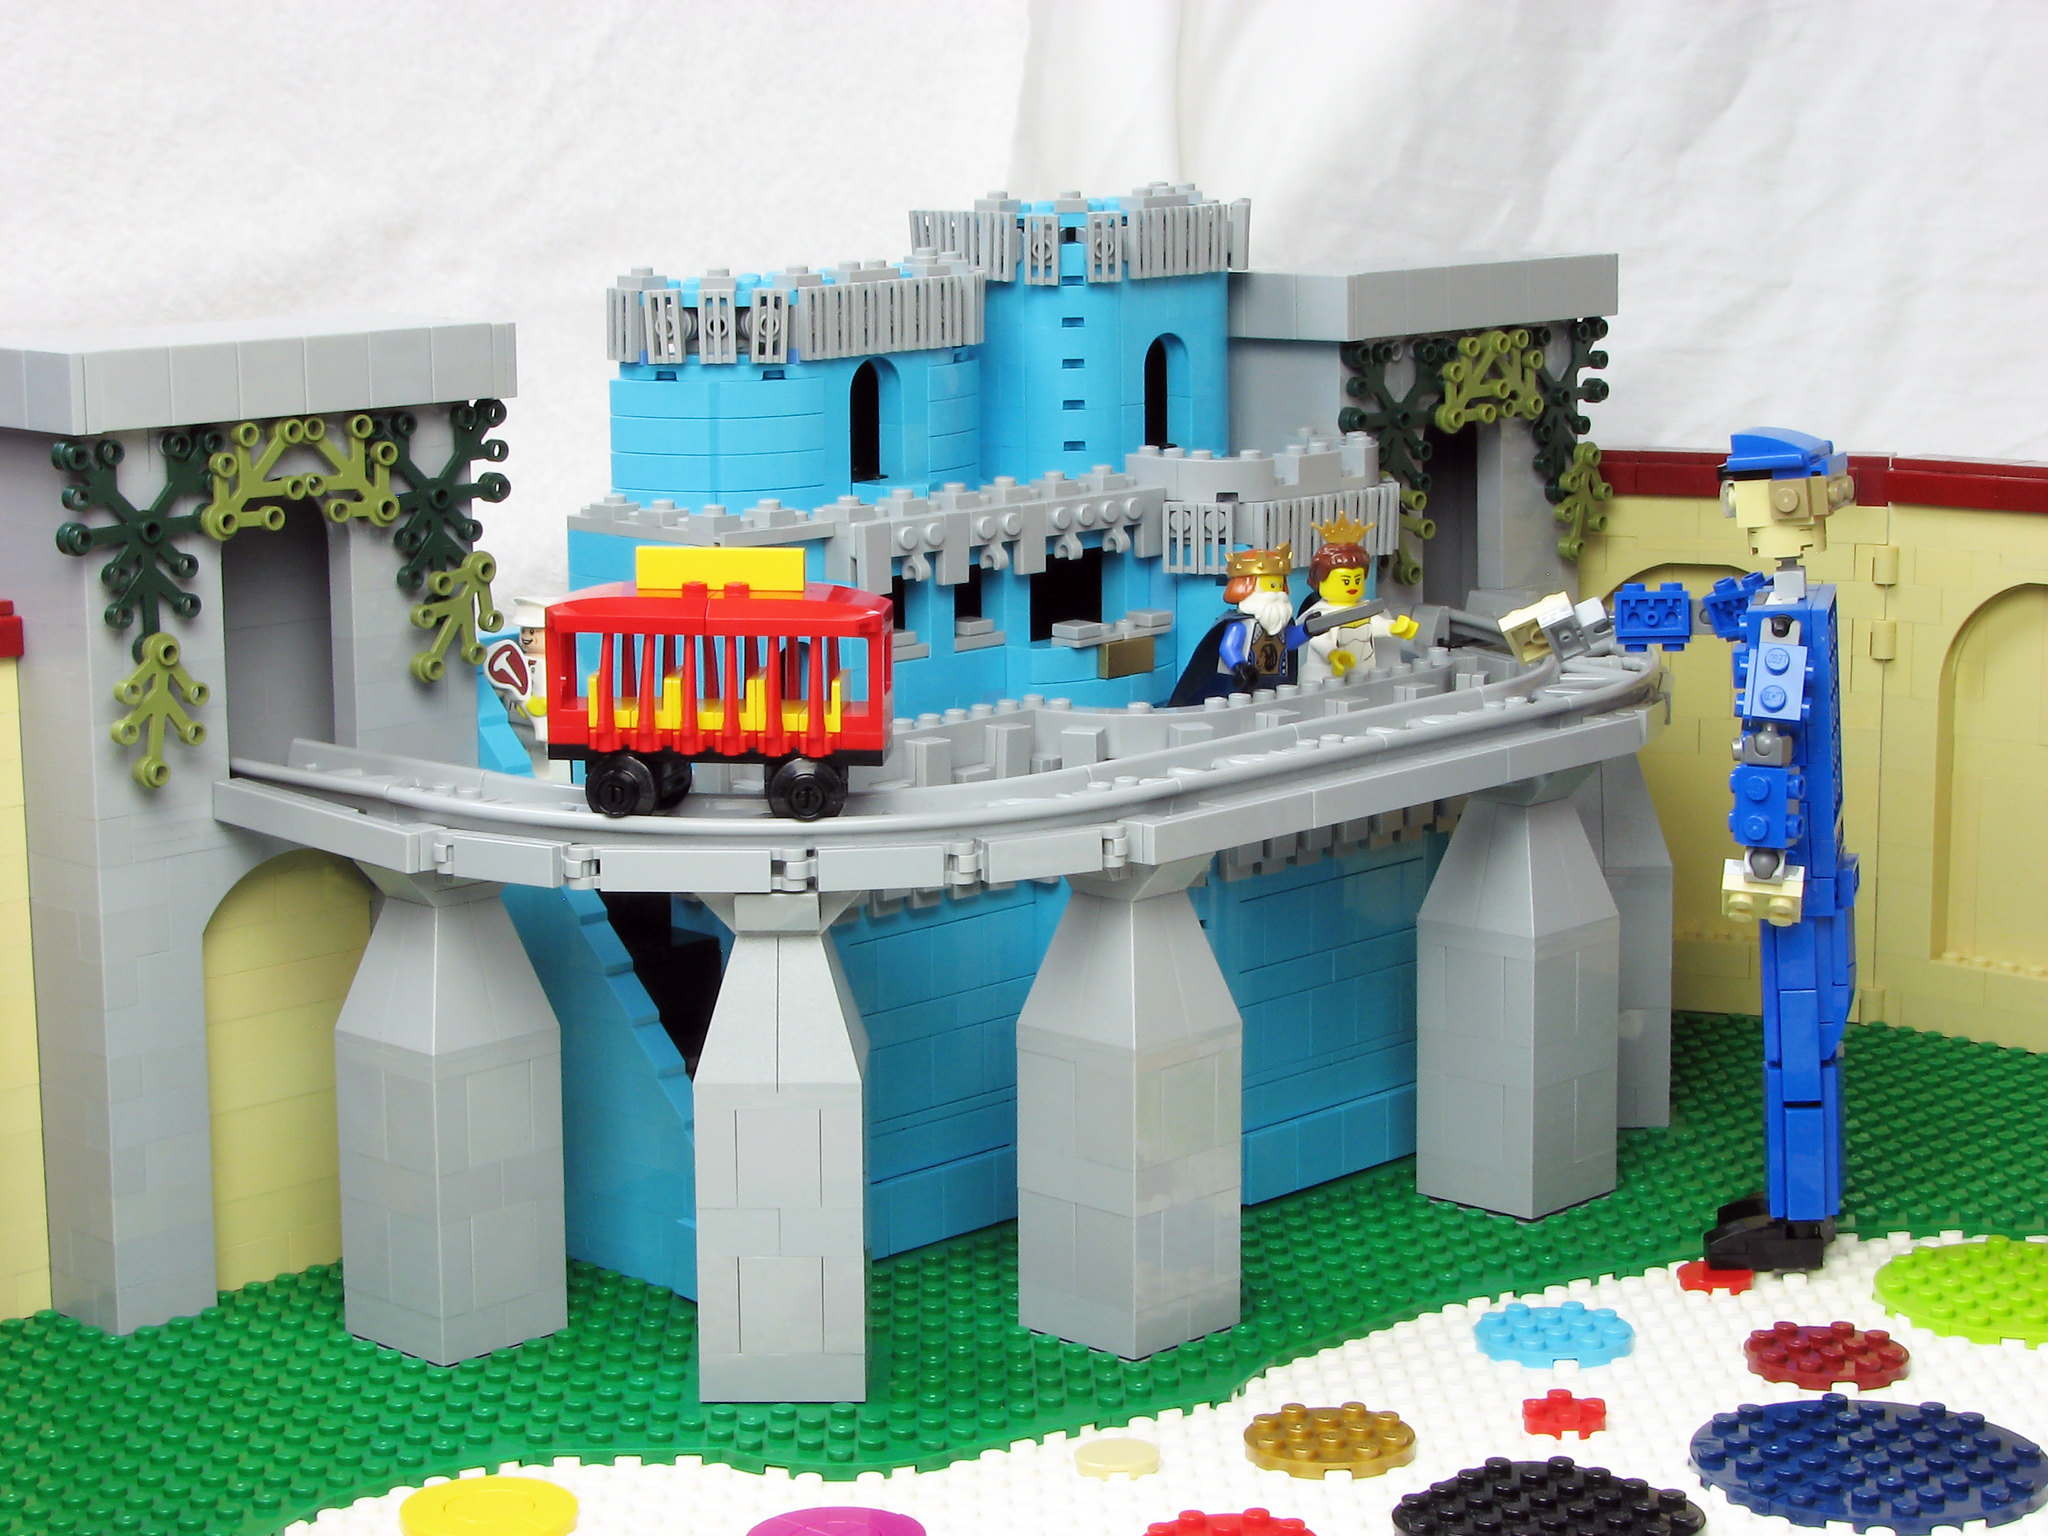 The Neighborhood Of Make Believe Bricknerd Your Place For All Things Lego And The Lego Fan Community